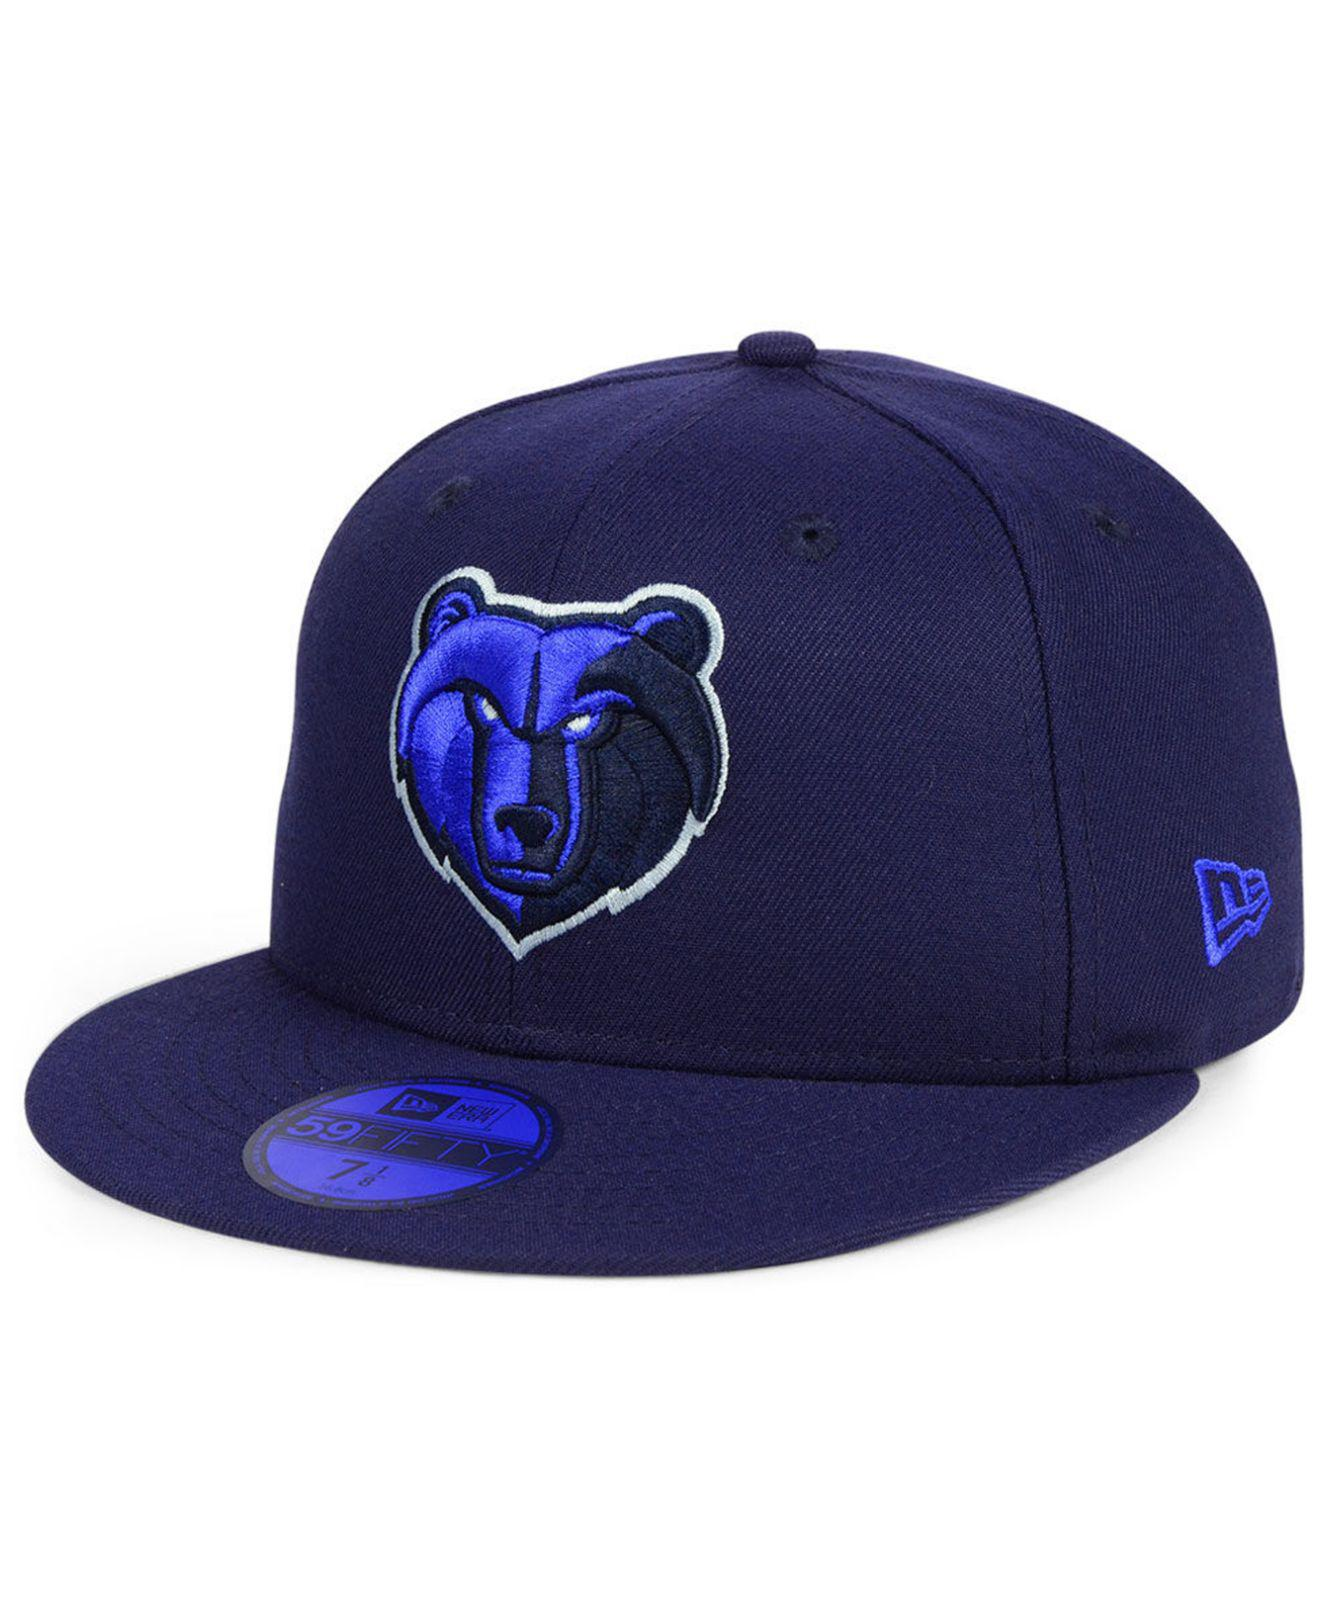 best service 8ddfd 909d3 ... color prism pack 59fifty cap 6287d b00b1  coupon for gallery.  previously sold at macys mens new era 59fifty 75288 256a2